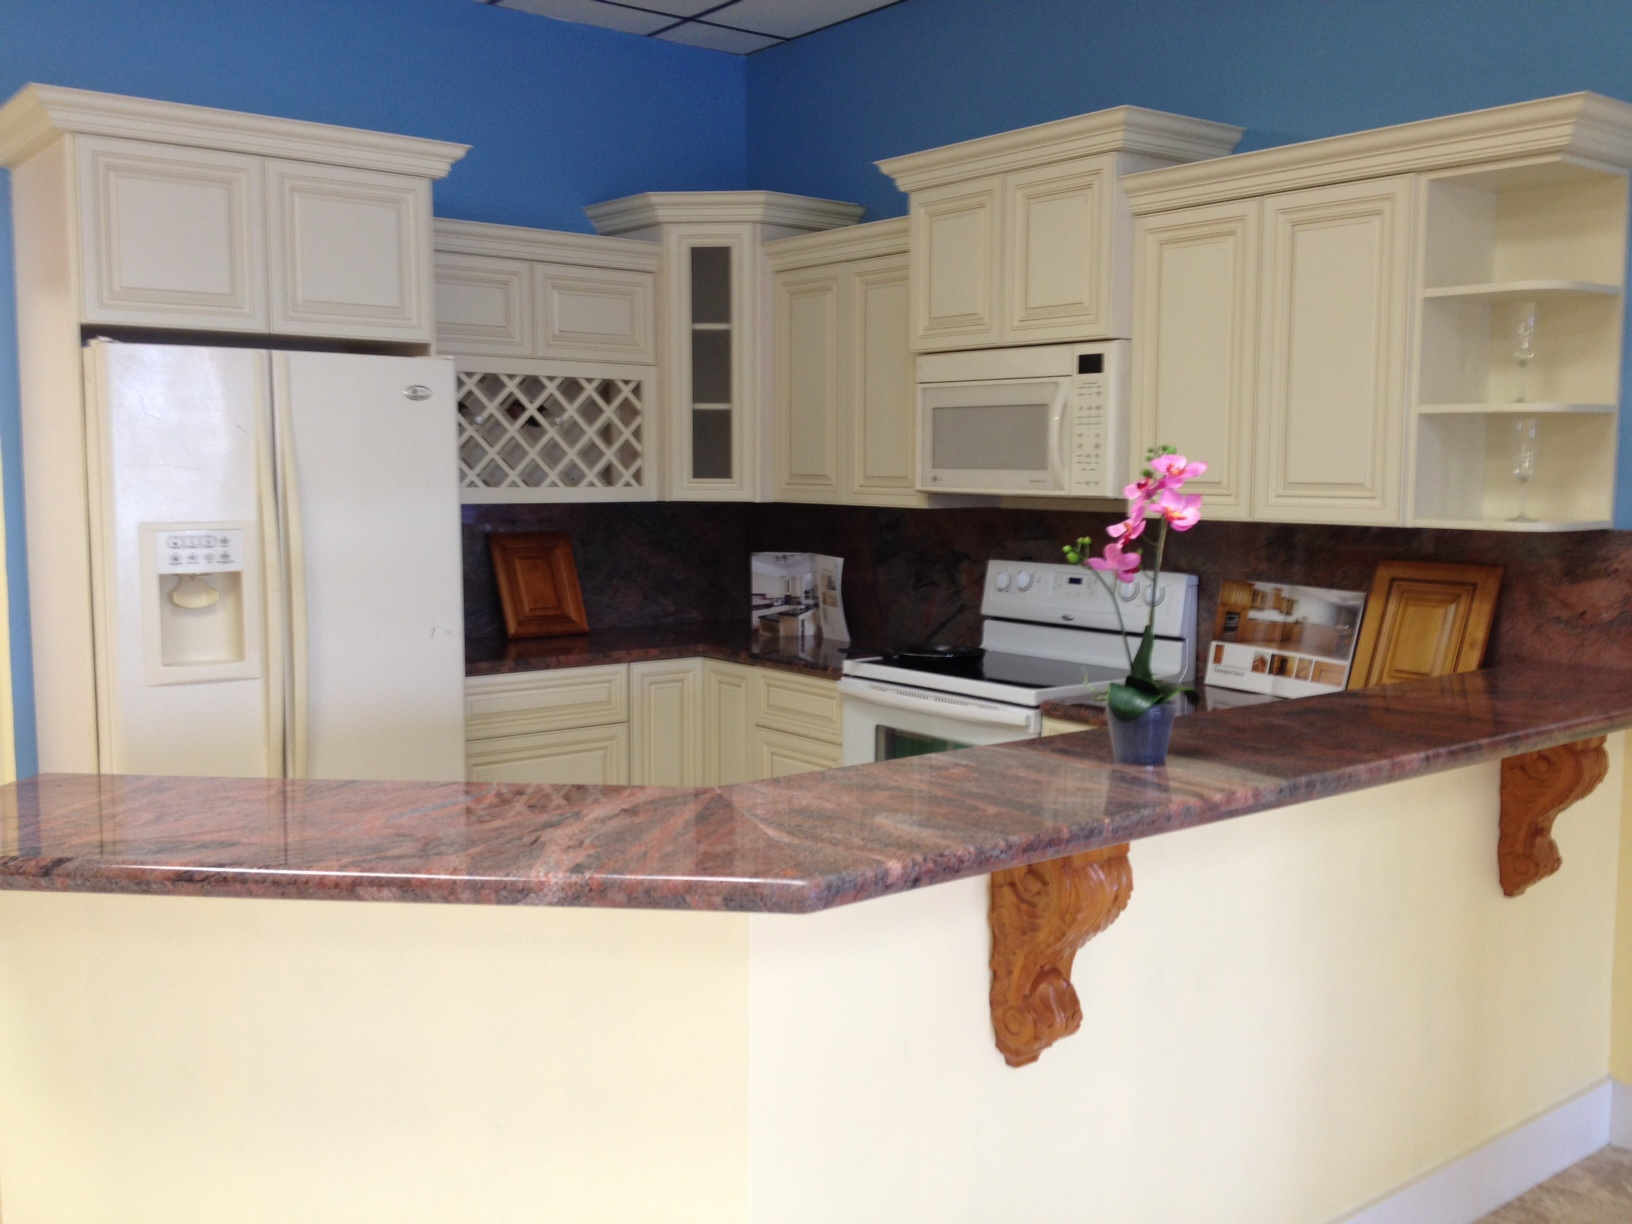 kitchen cabinetry wholesale kitchen cabinets Princeton White